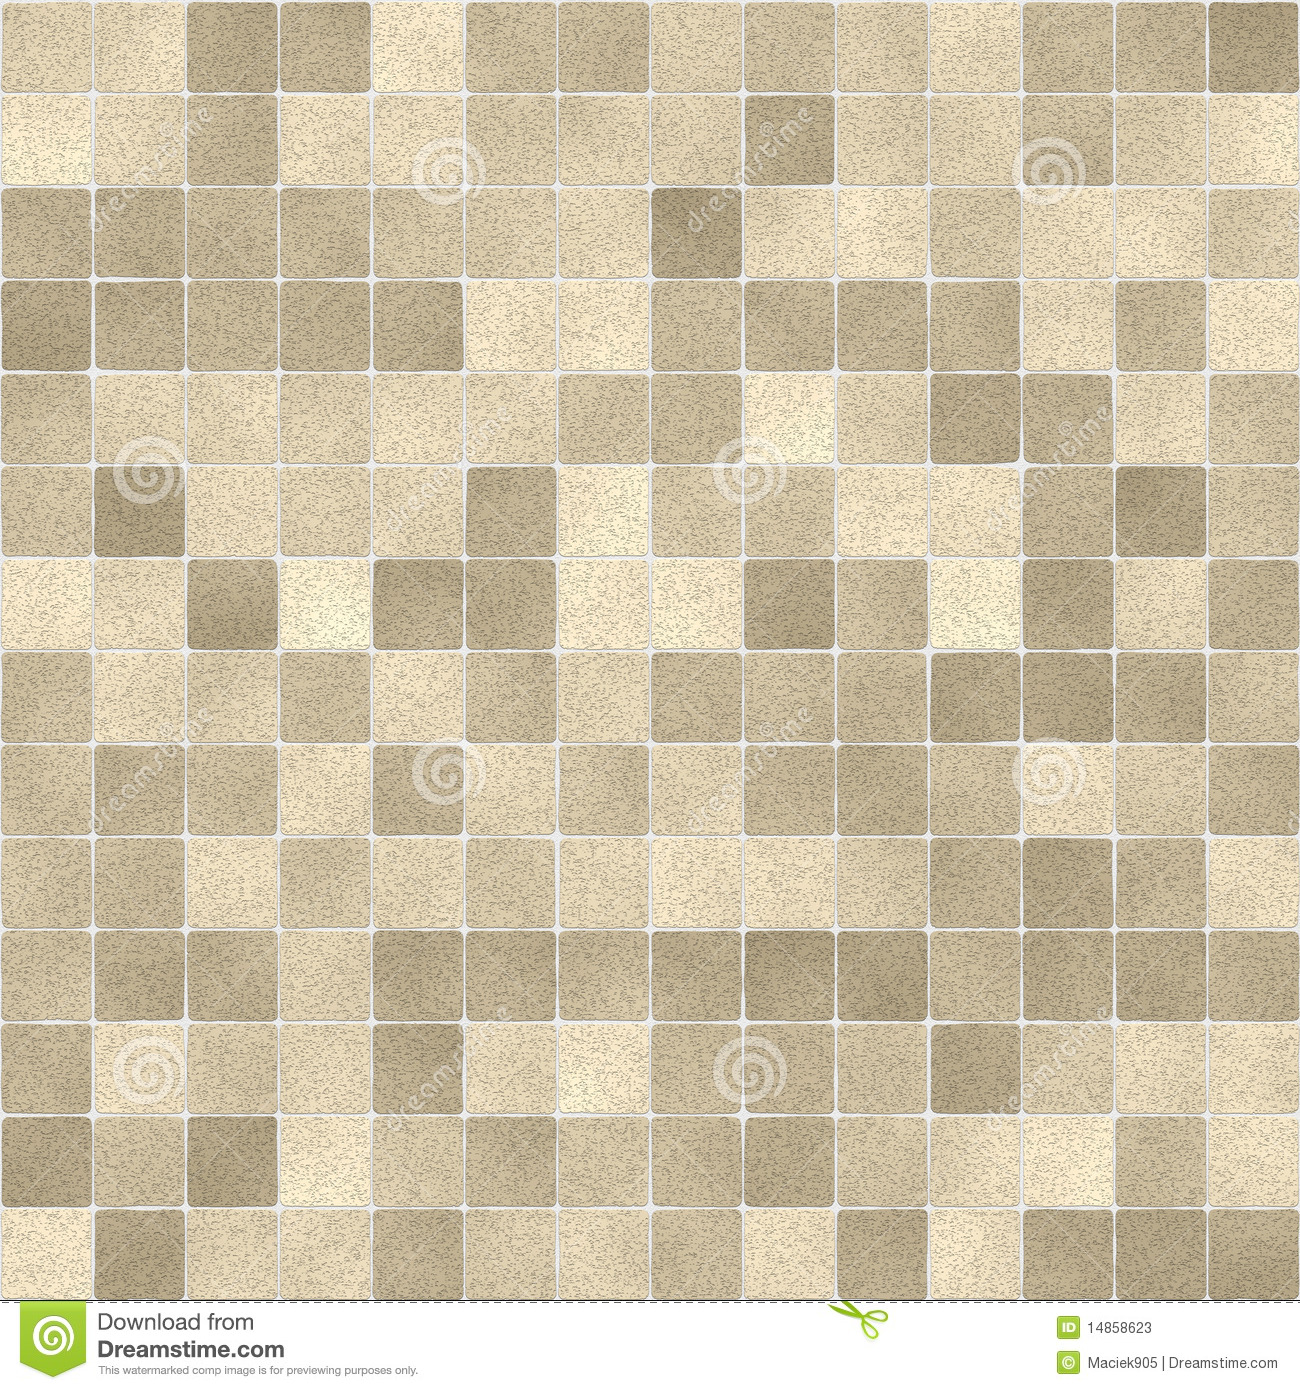 Seamless Bathroom Tiles Pattern Stock Photos - Image: 14858623